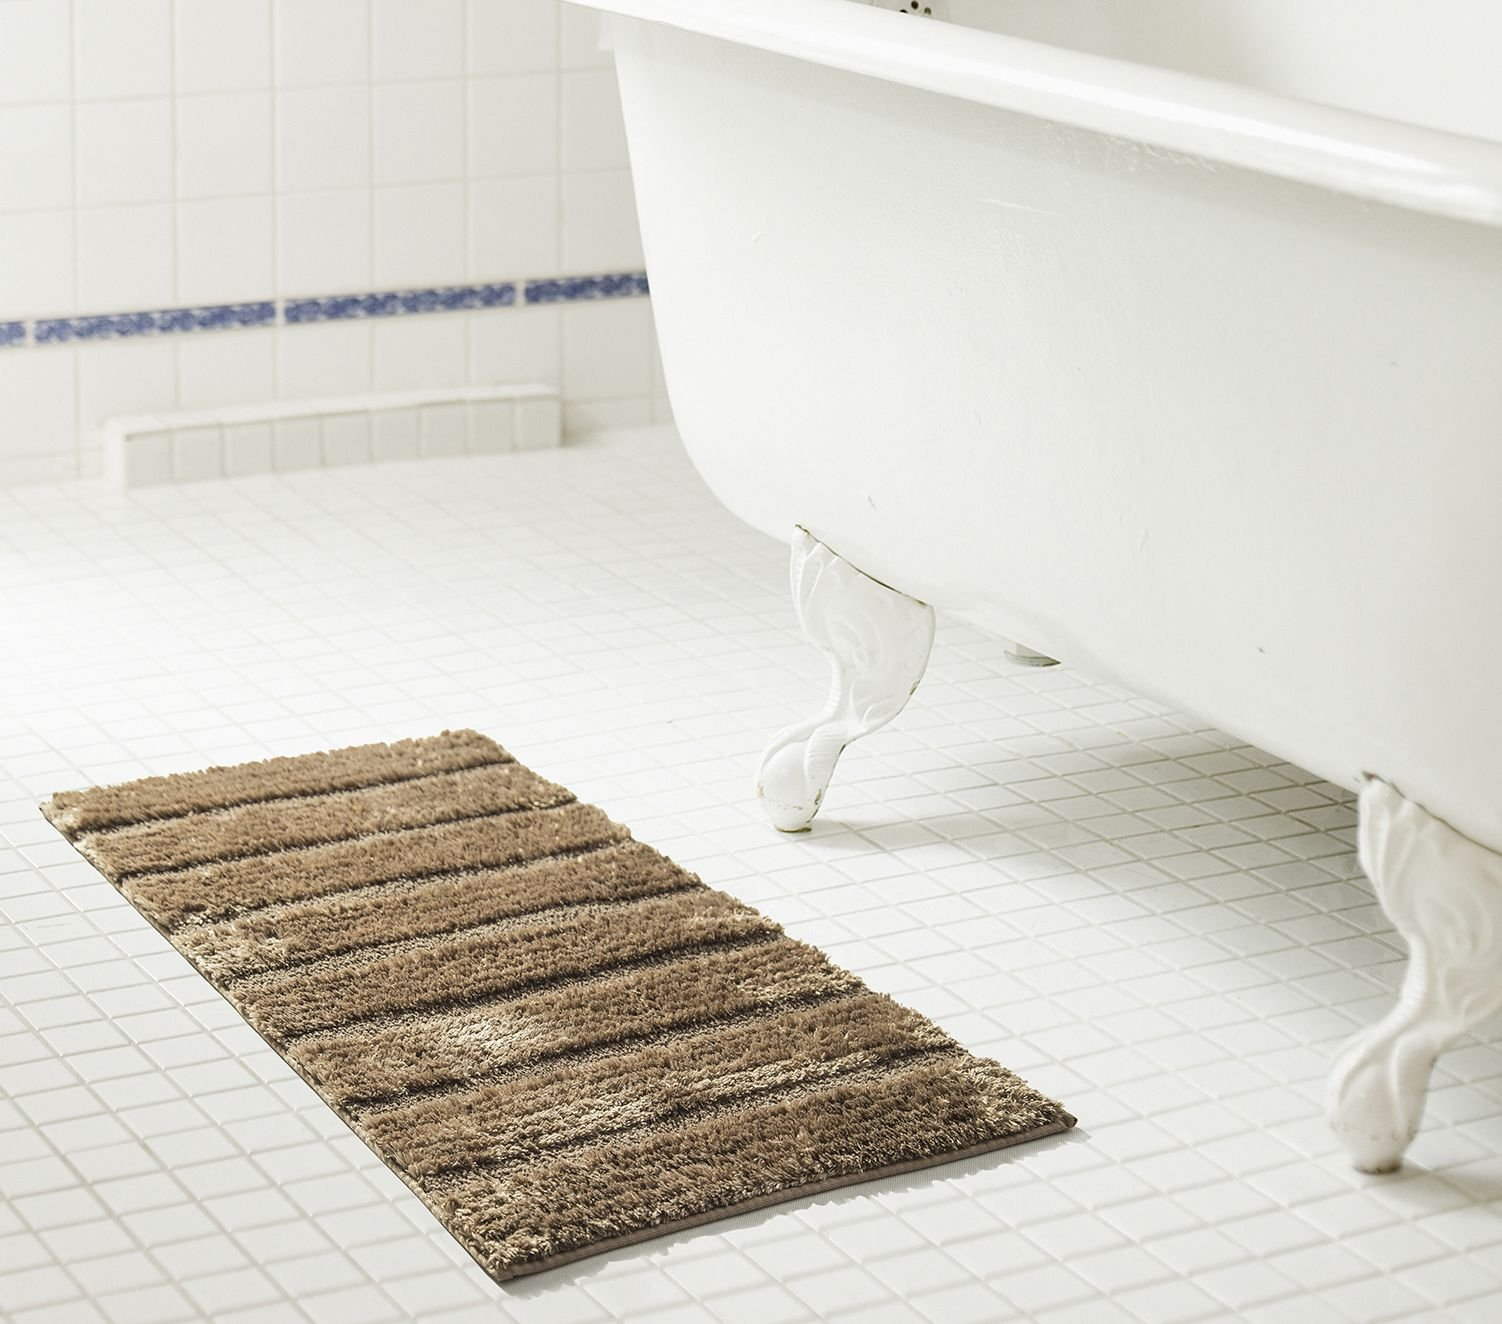 "RT Designers Collection Bello Microfiber Bath Mat, Taupe, 20"" x 32"" - Includes (1x) 20 x 32 in. Bello microfiber bath mat Non-skid backing, non-slip surface for added safety Instantly give your bathroom a stylish modern feel with this microfiber bath mat - bathroom-linens, bathroom, bath-mats - 71NJOV1ZqTL -"